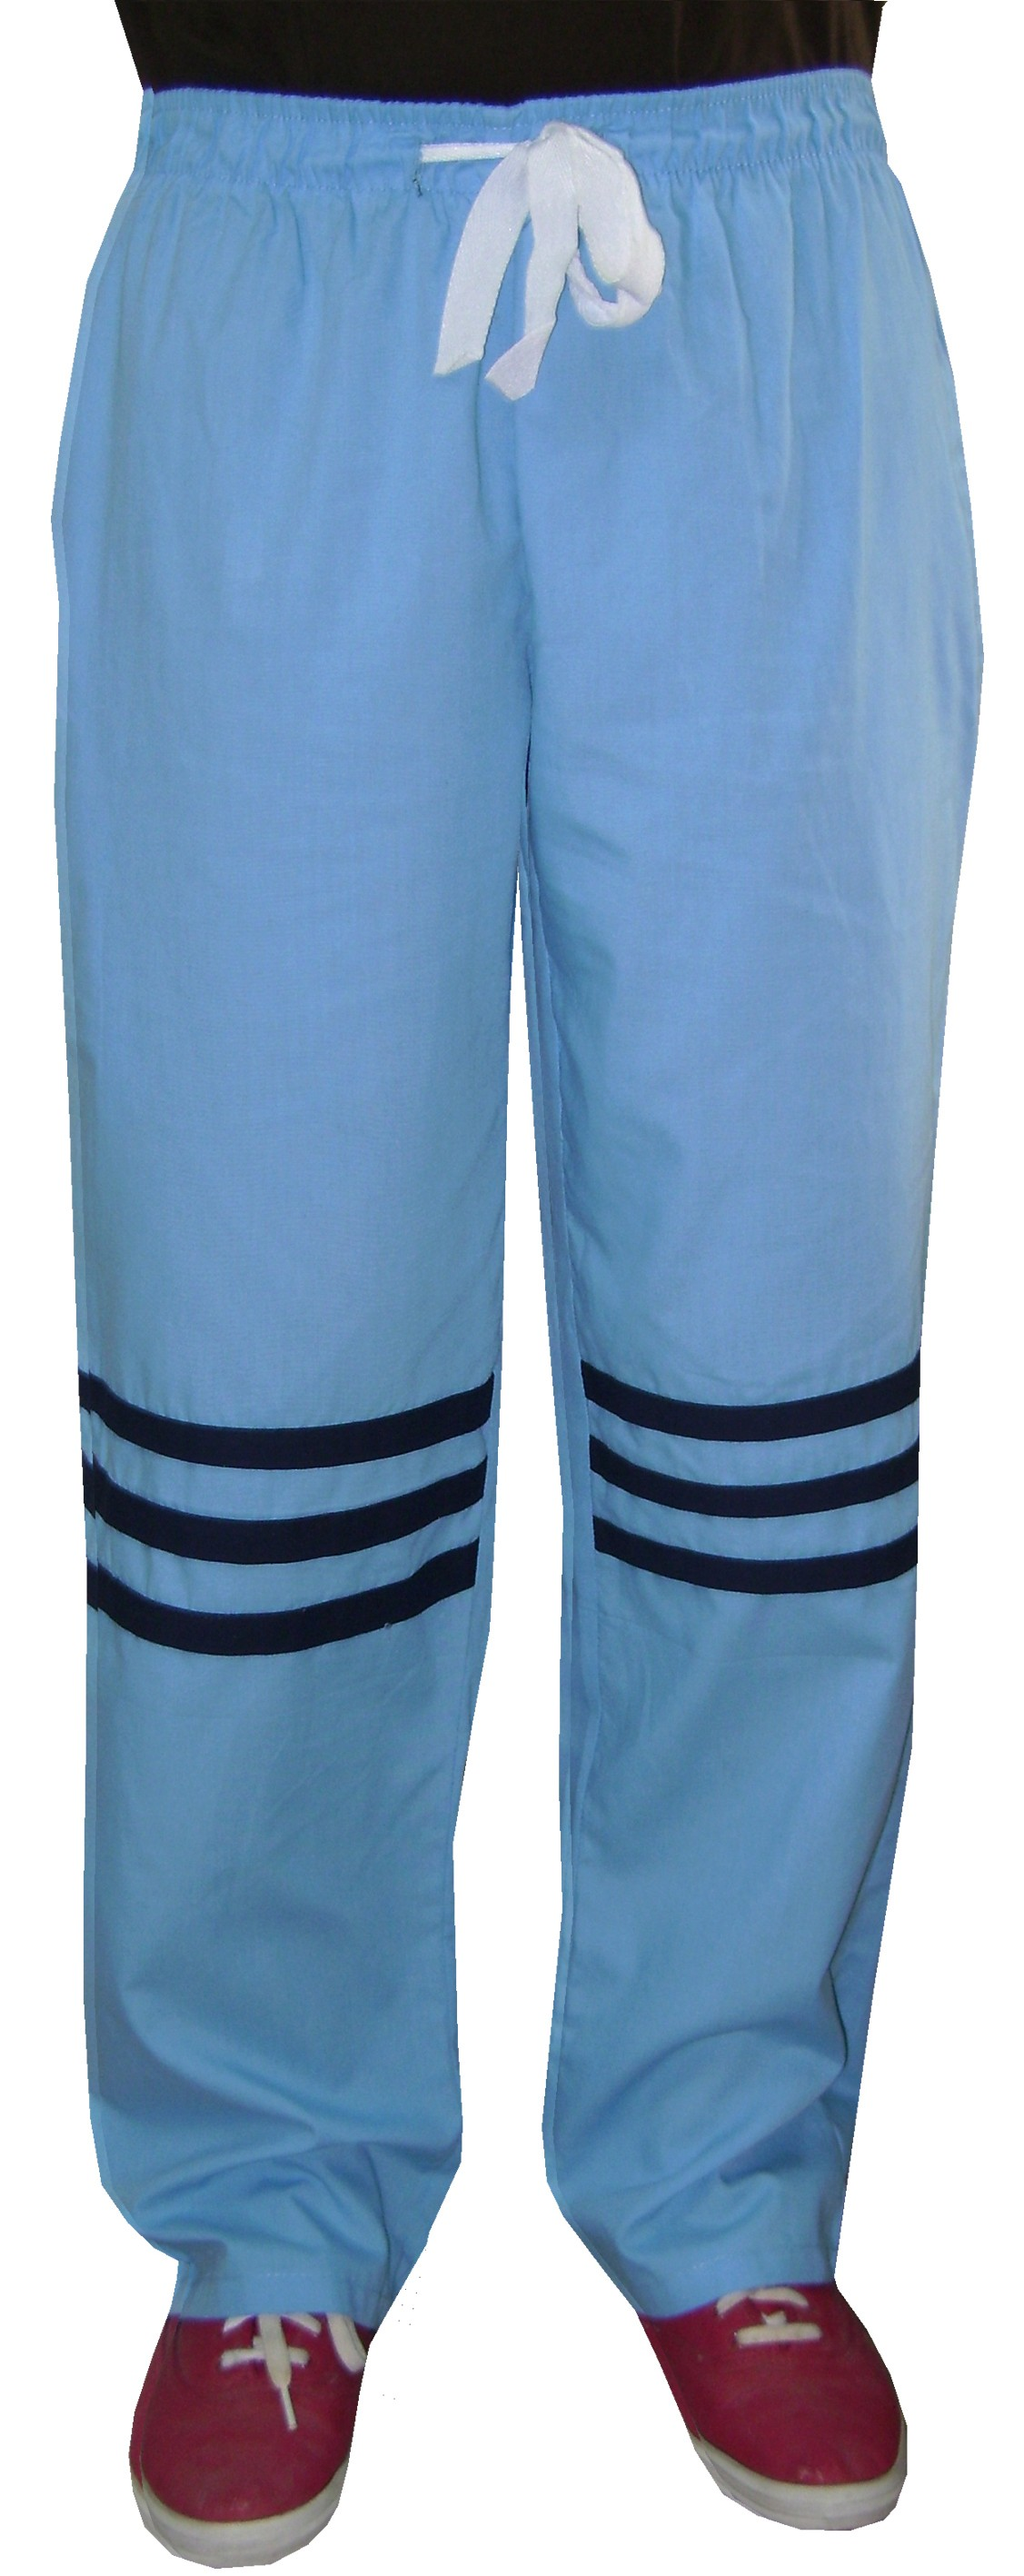 Pant 2 side pockets contrast stripes waistband with drawstring and elastic both unisex